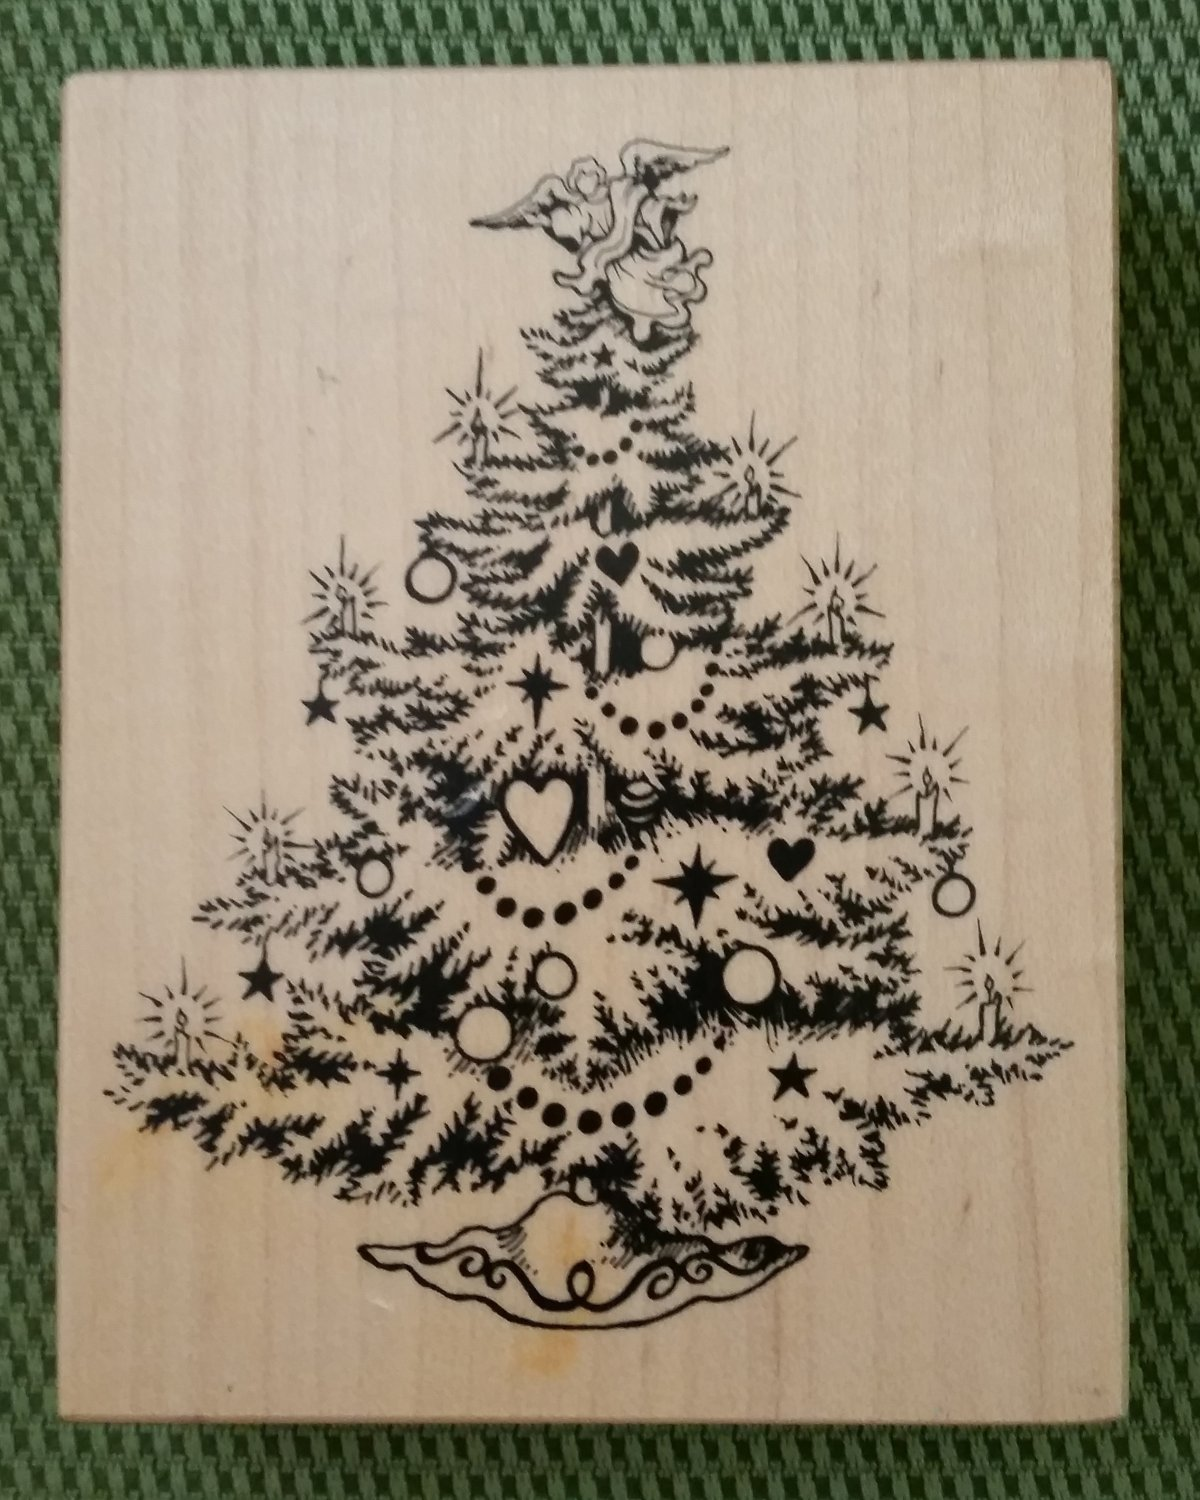 Christmas Tree Wood Mounted Rubber Stamp #K-495 by PSX from 1992 - MADE IN USA - RETIRED - NEW!